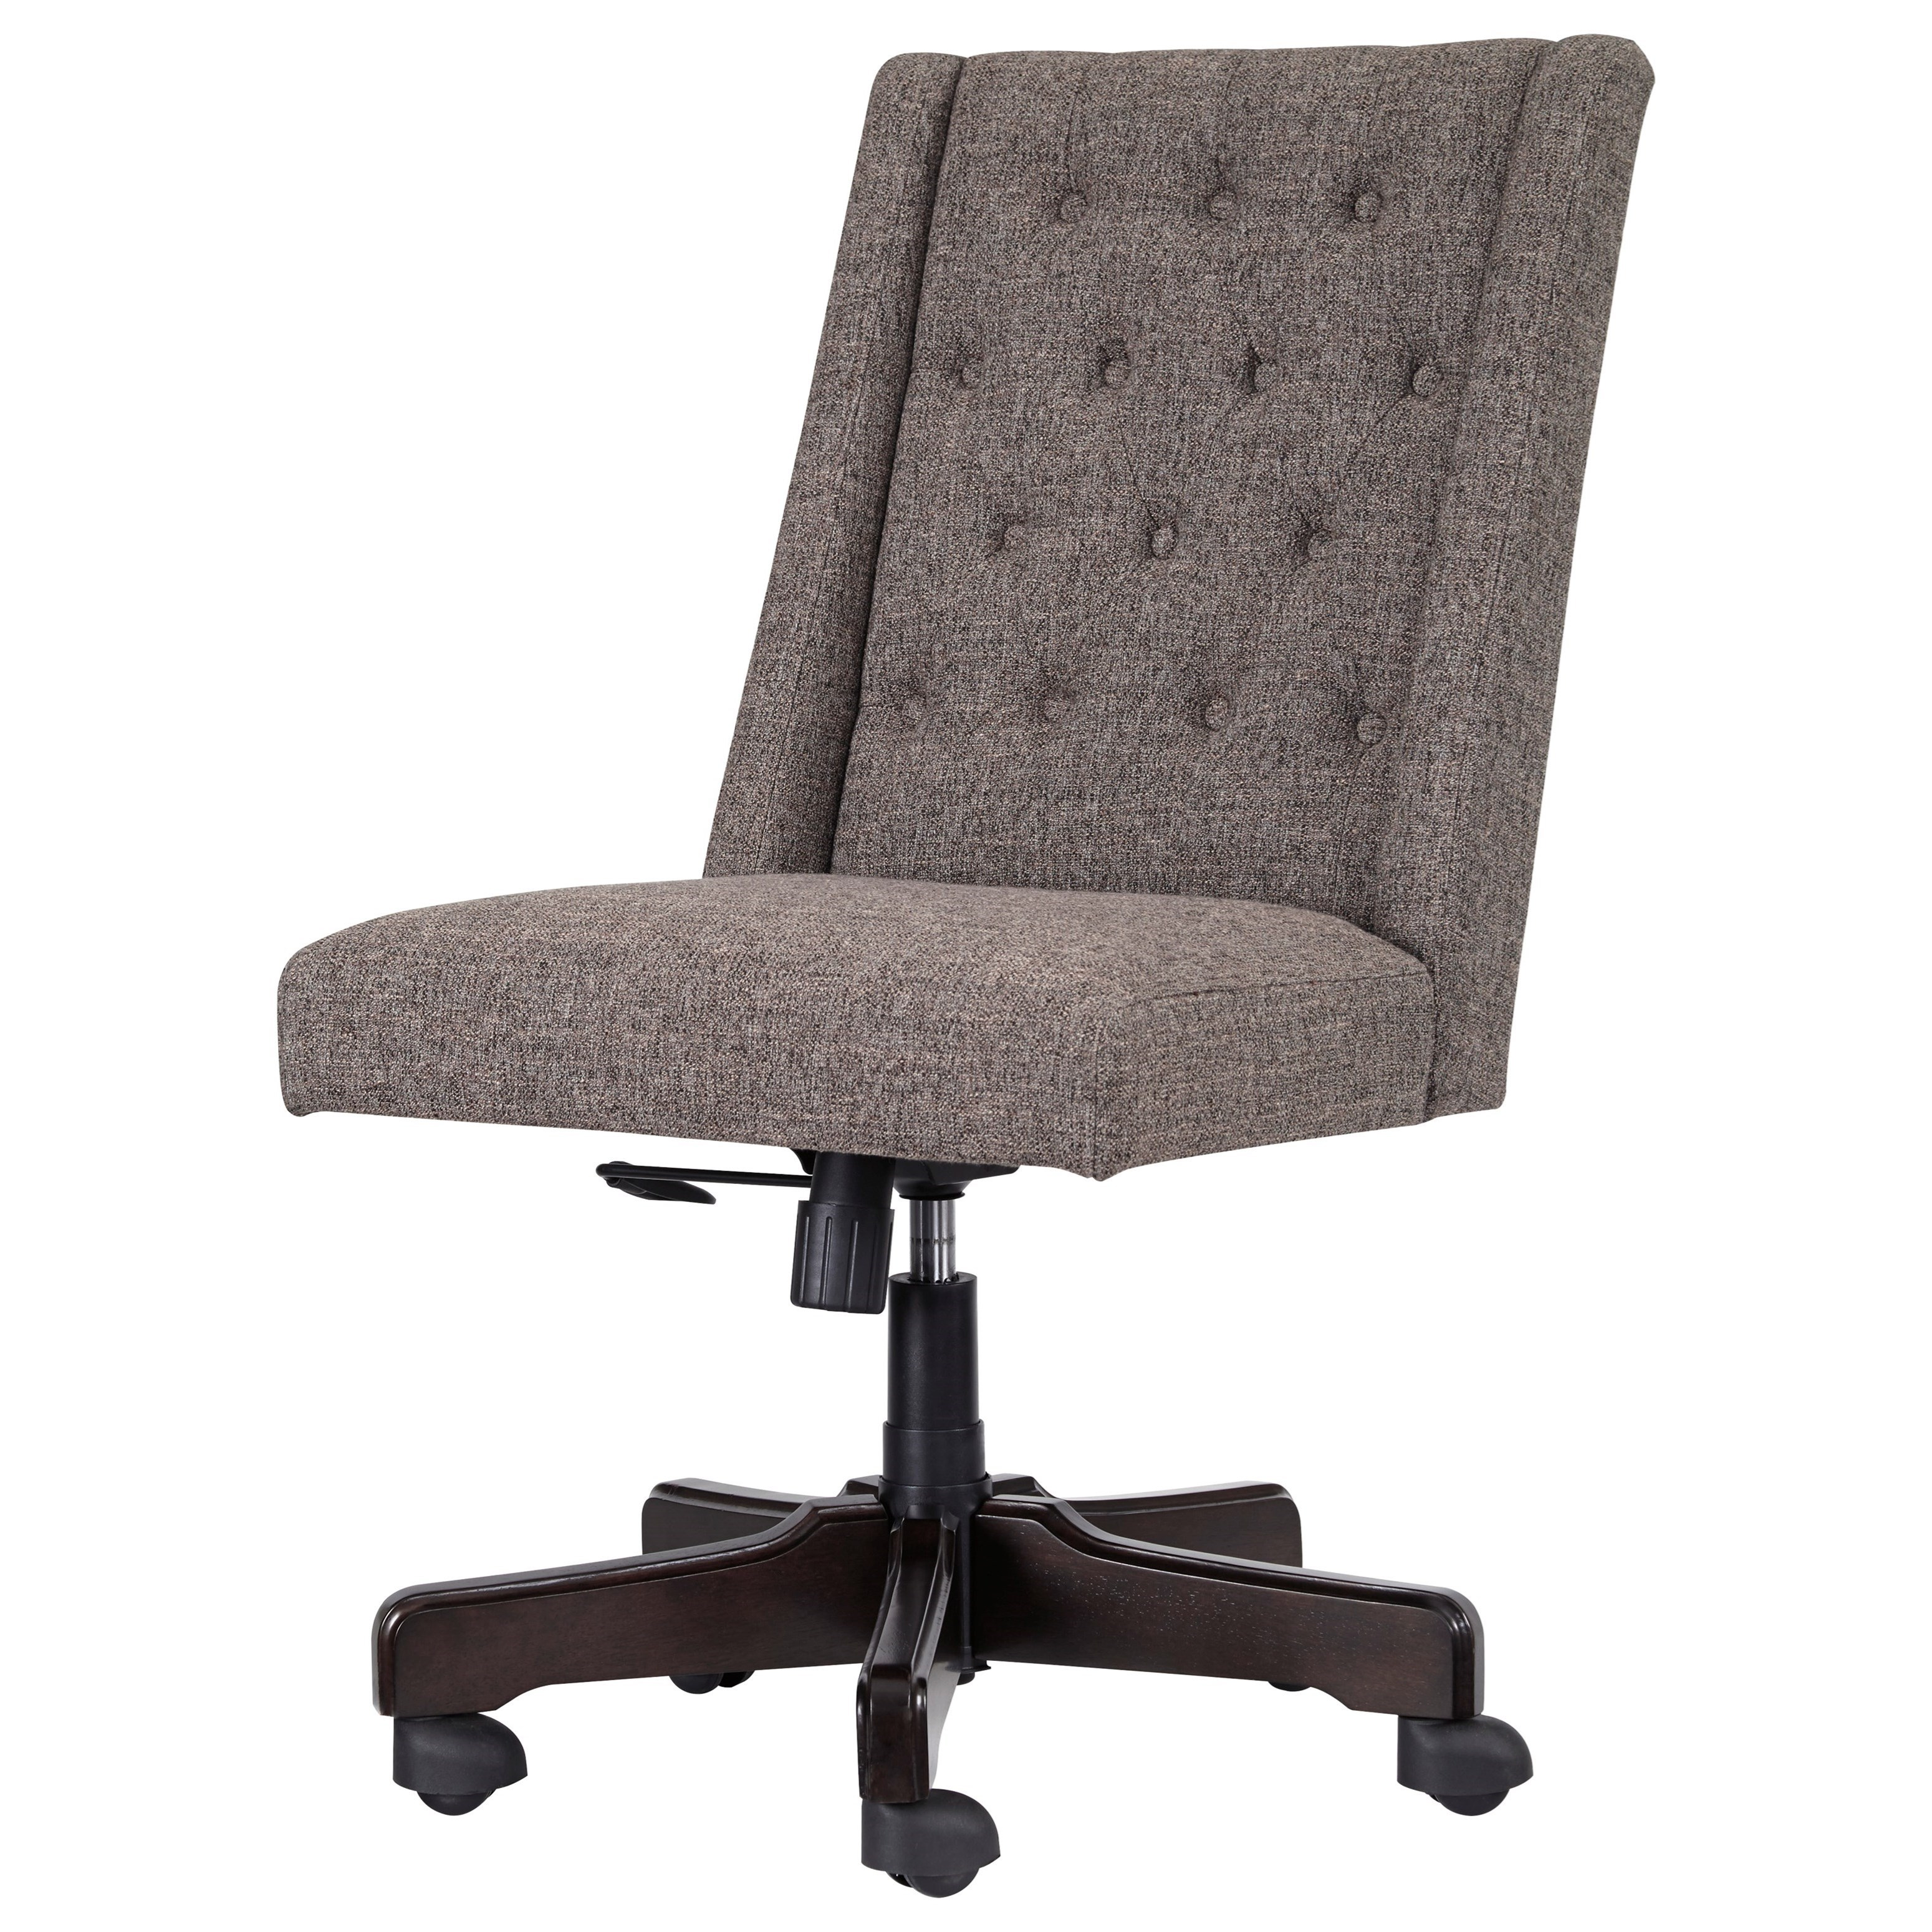 Office Chair Program Desk Chair by Signature Design by Ashley at Red Knot